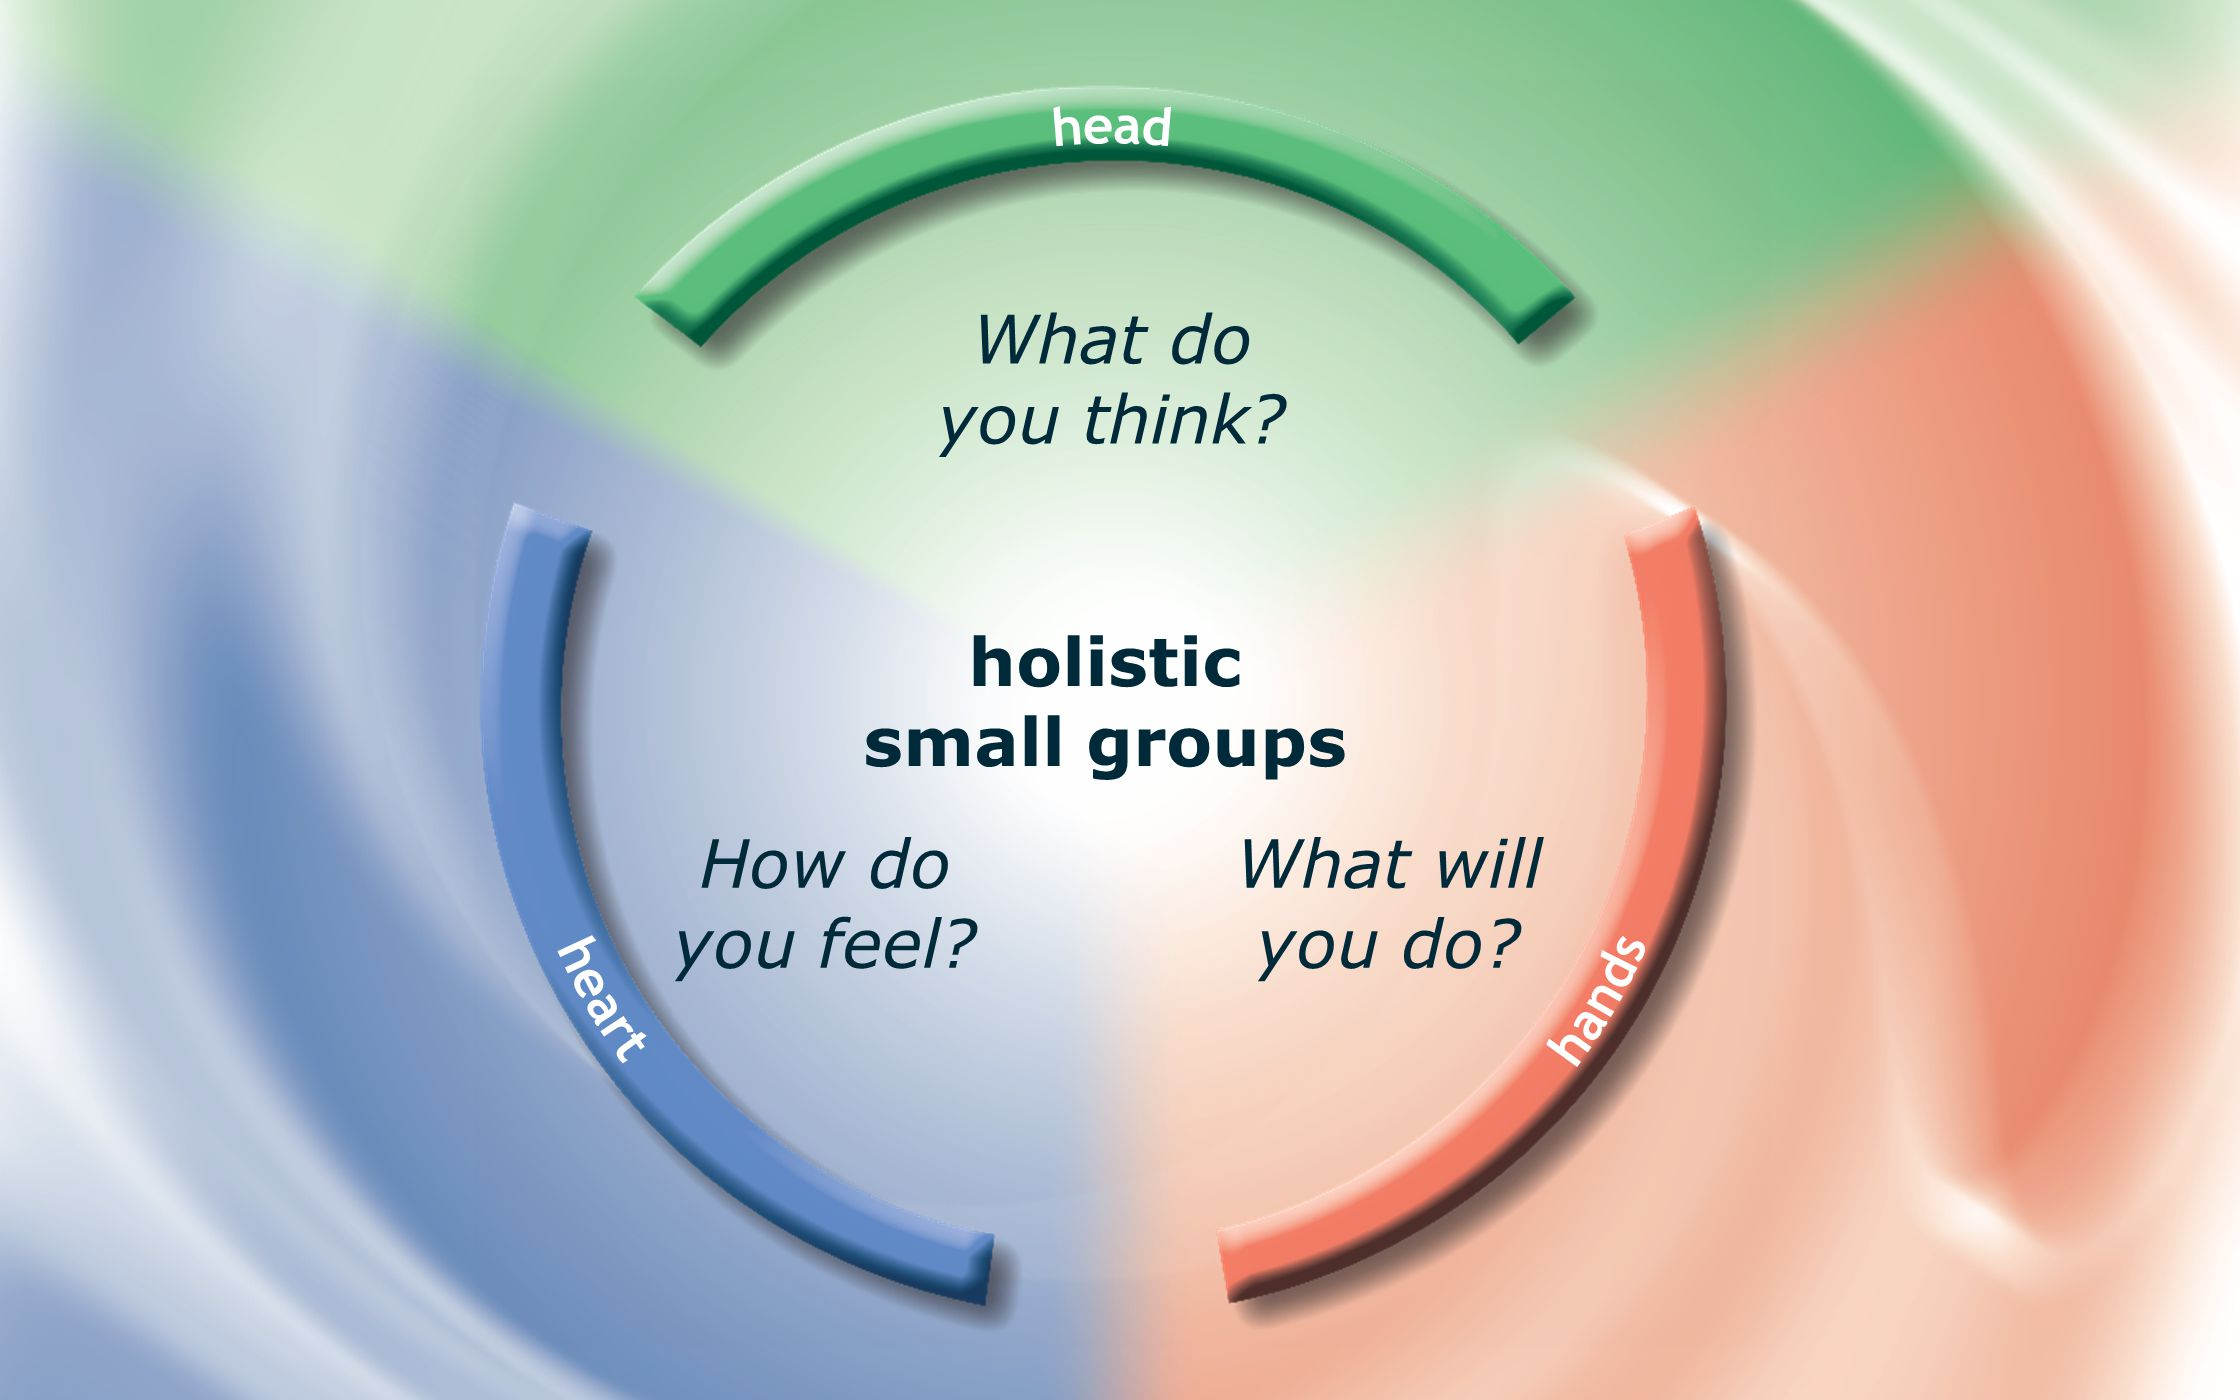 holistic small groups What do you think? What will you do? How do you feel?